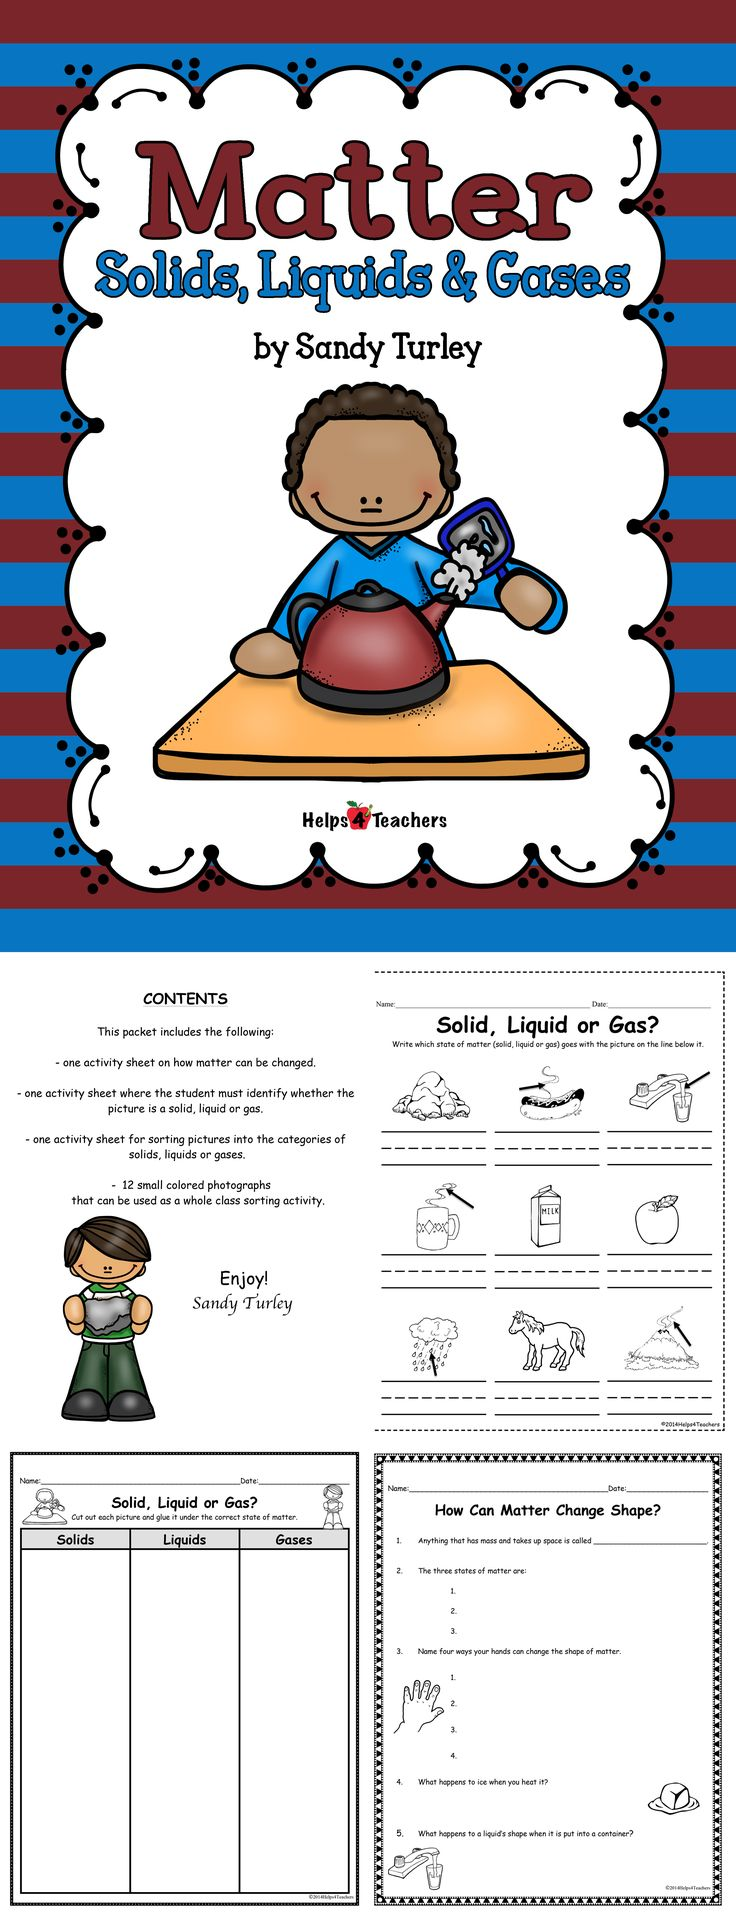 106 best solids liquids gases images on pinterest science matter solids liquids and gases gamestrikefo Image collections